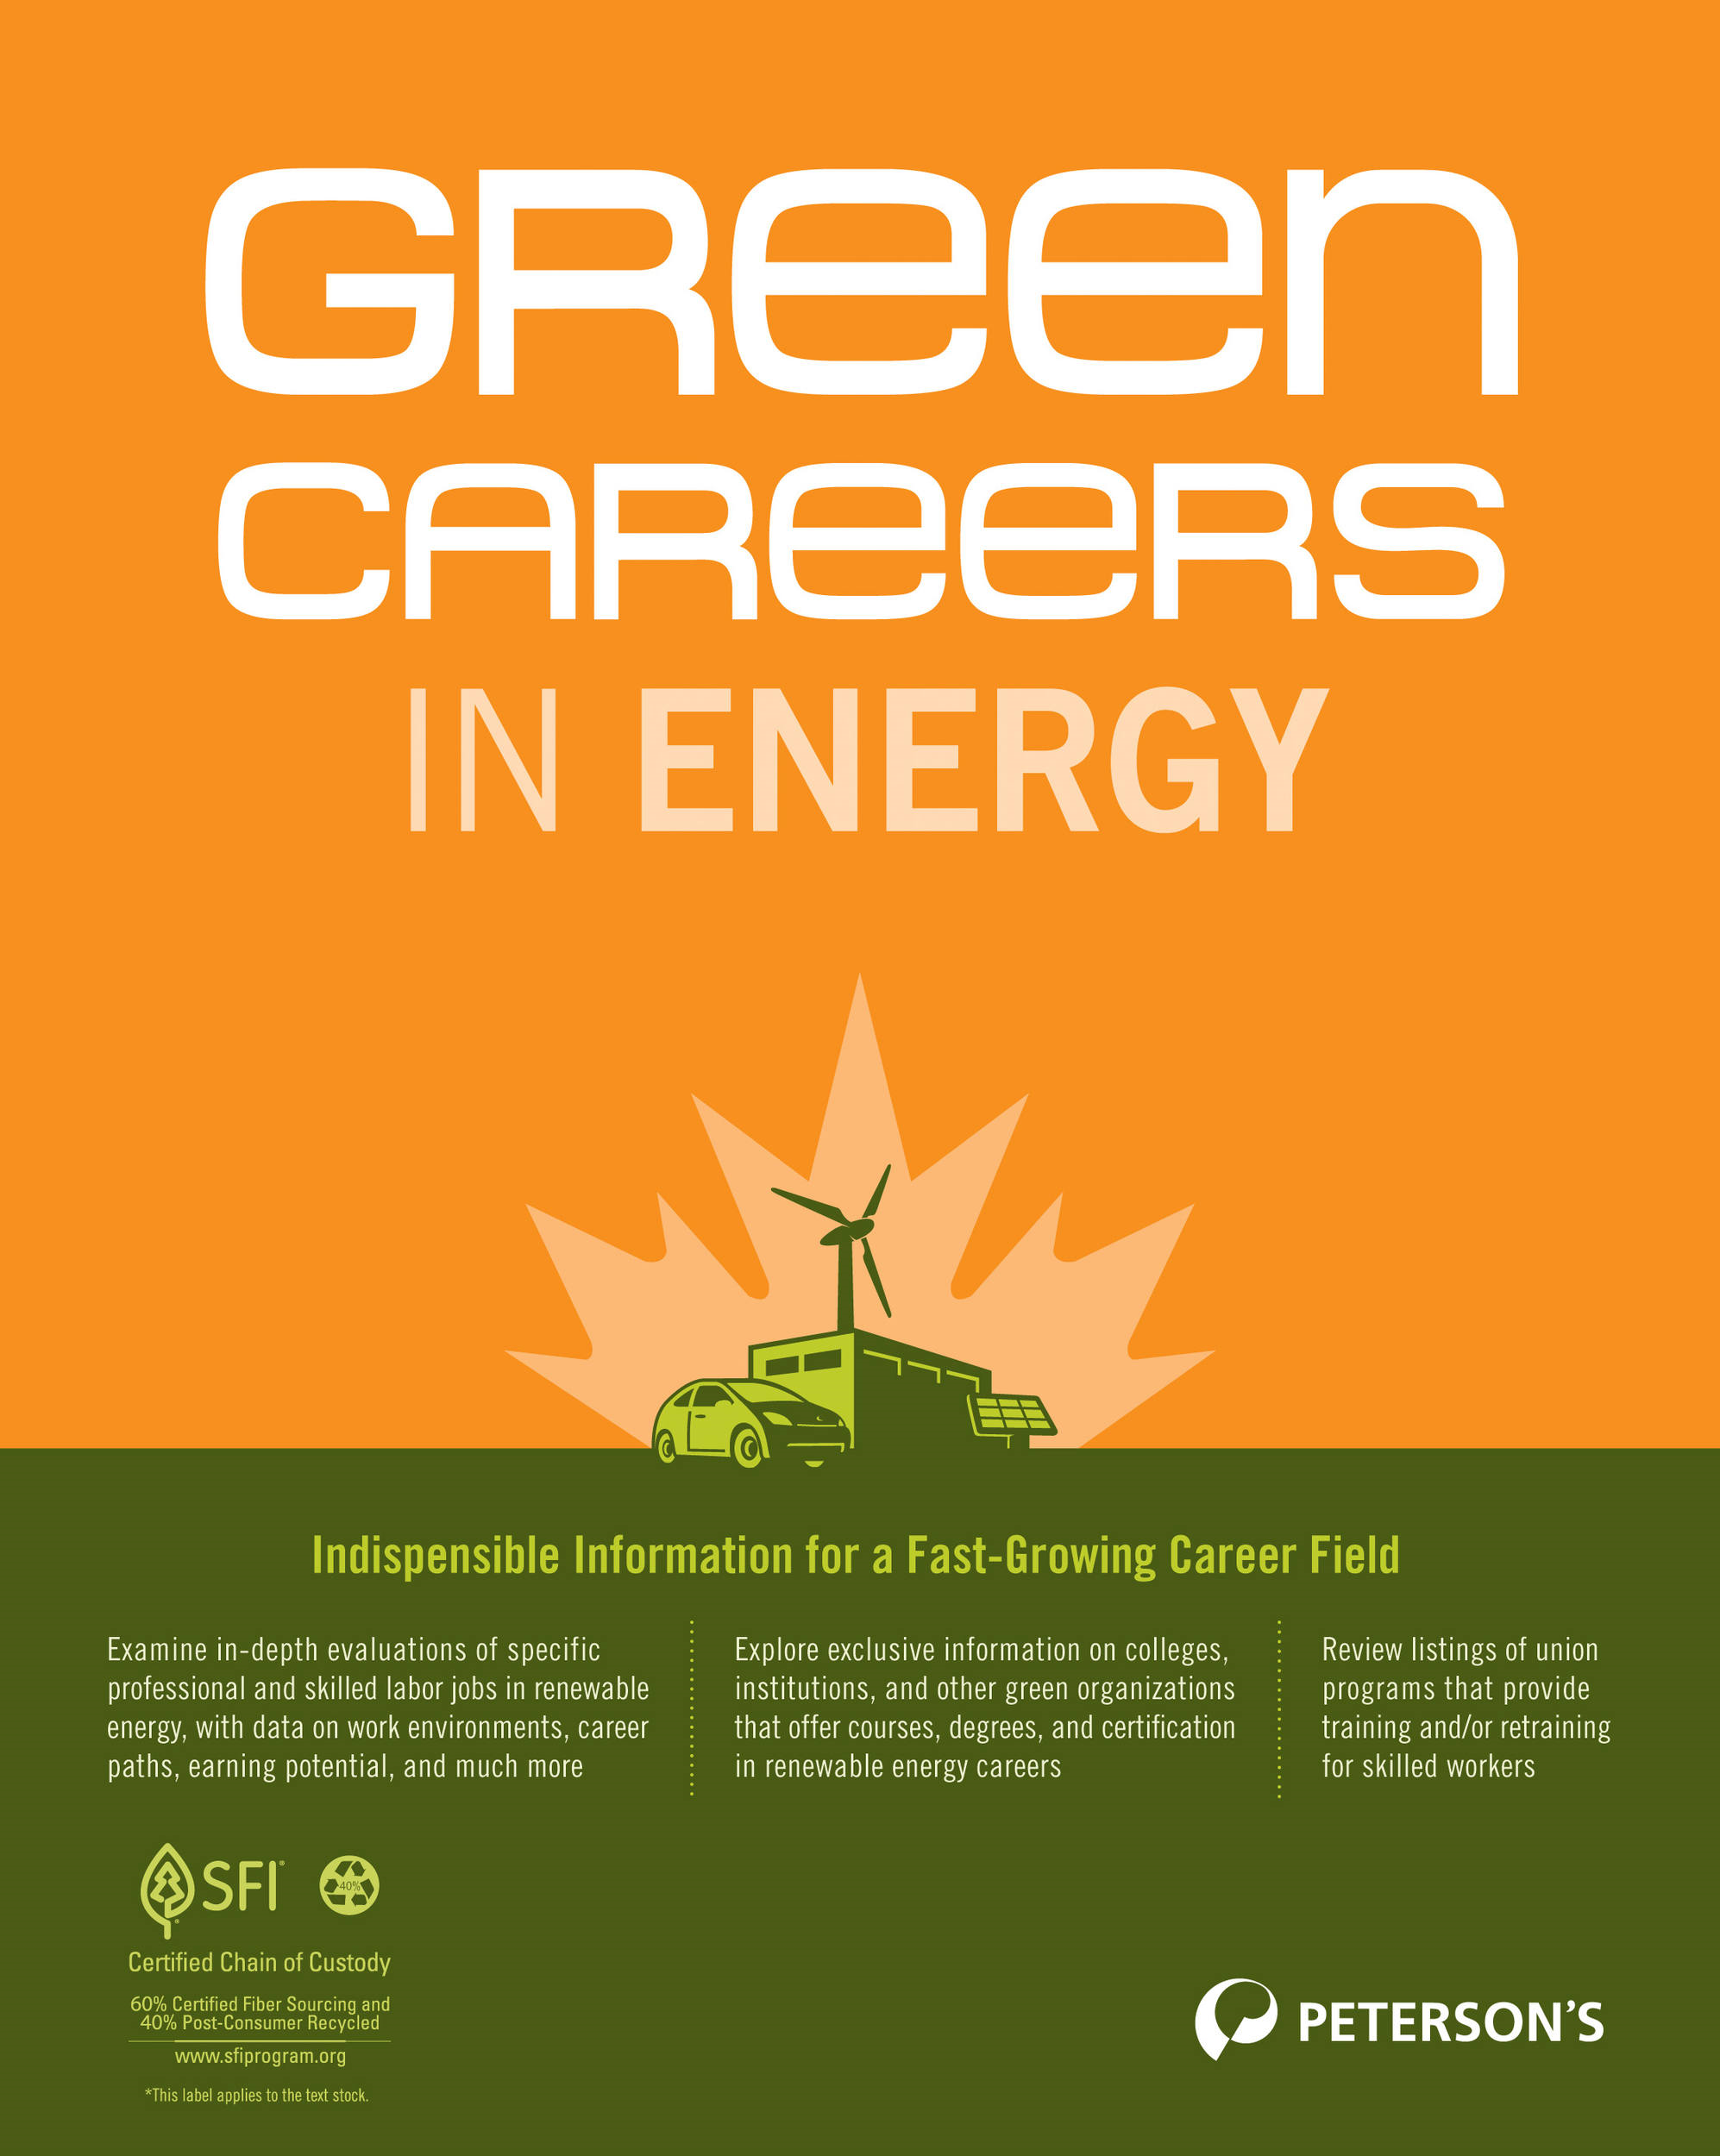 Green Careers in Energy: Union Training Programs for Green Jobs By: Peterson's